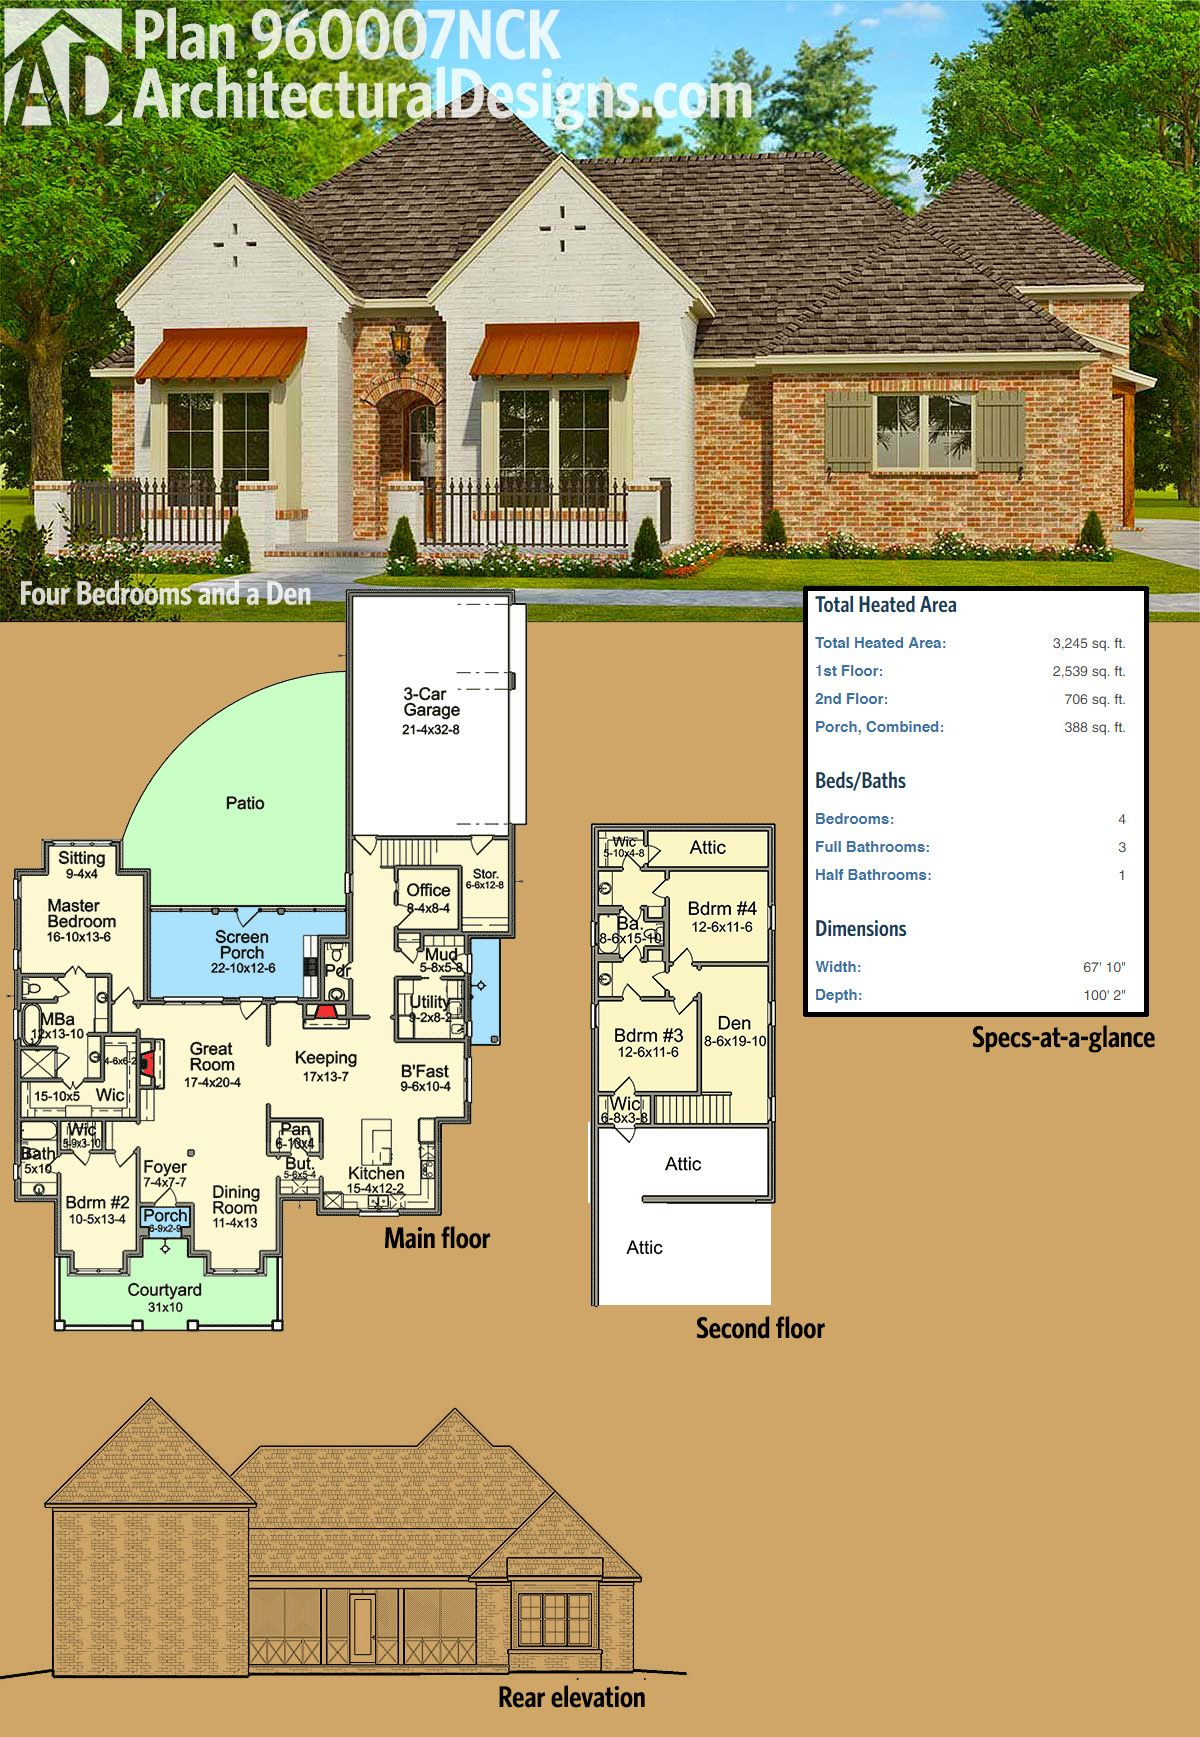 Plan 960007nck Four Bedrooms And A Den French Country House Plans Country House Plans House Layout Plans